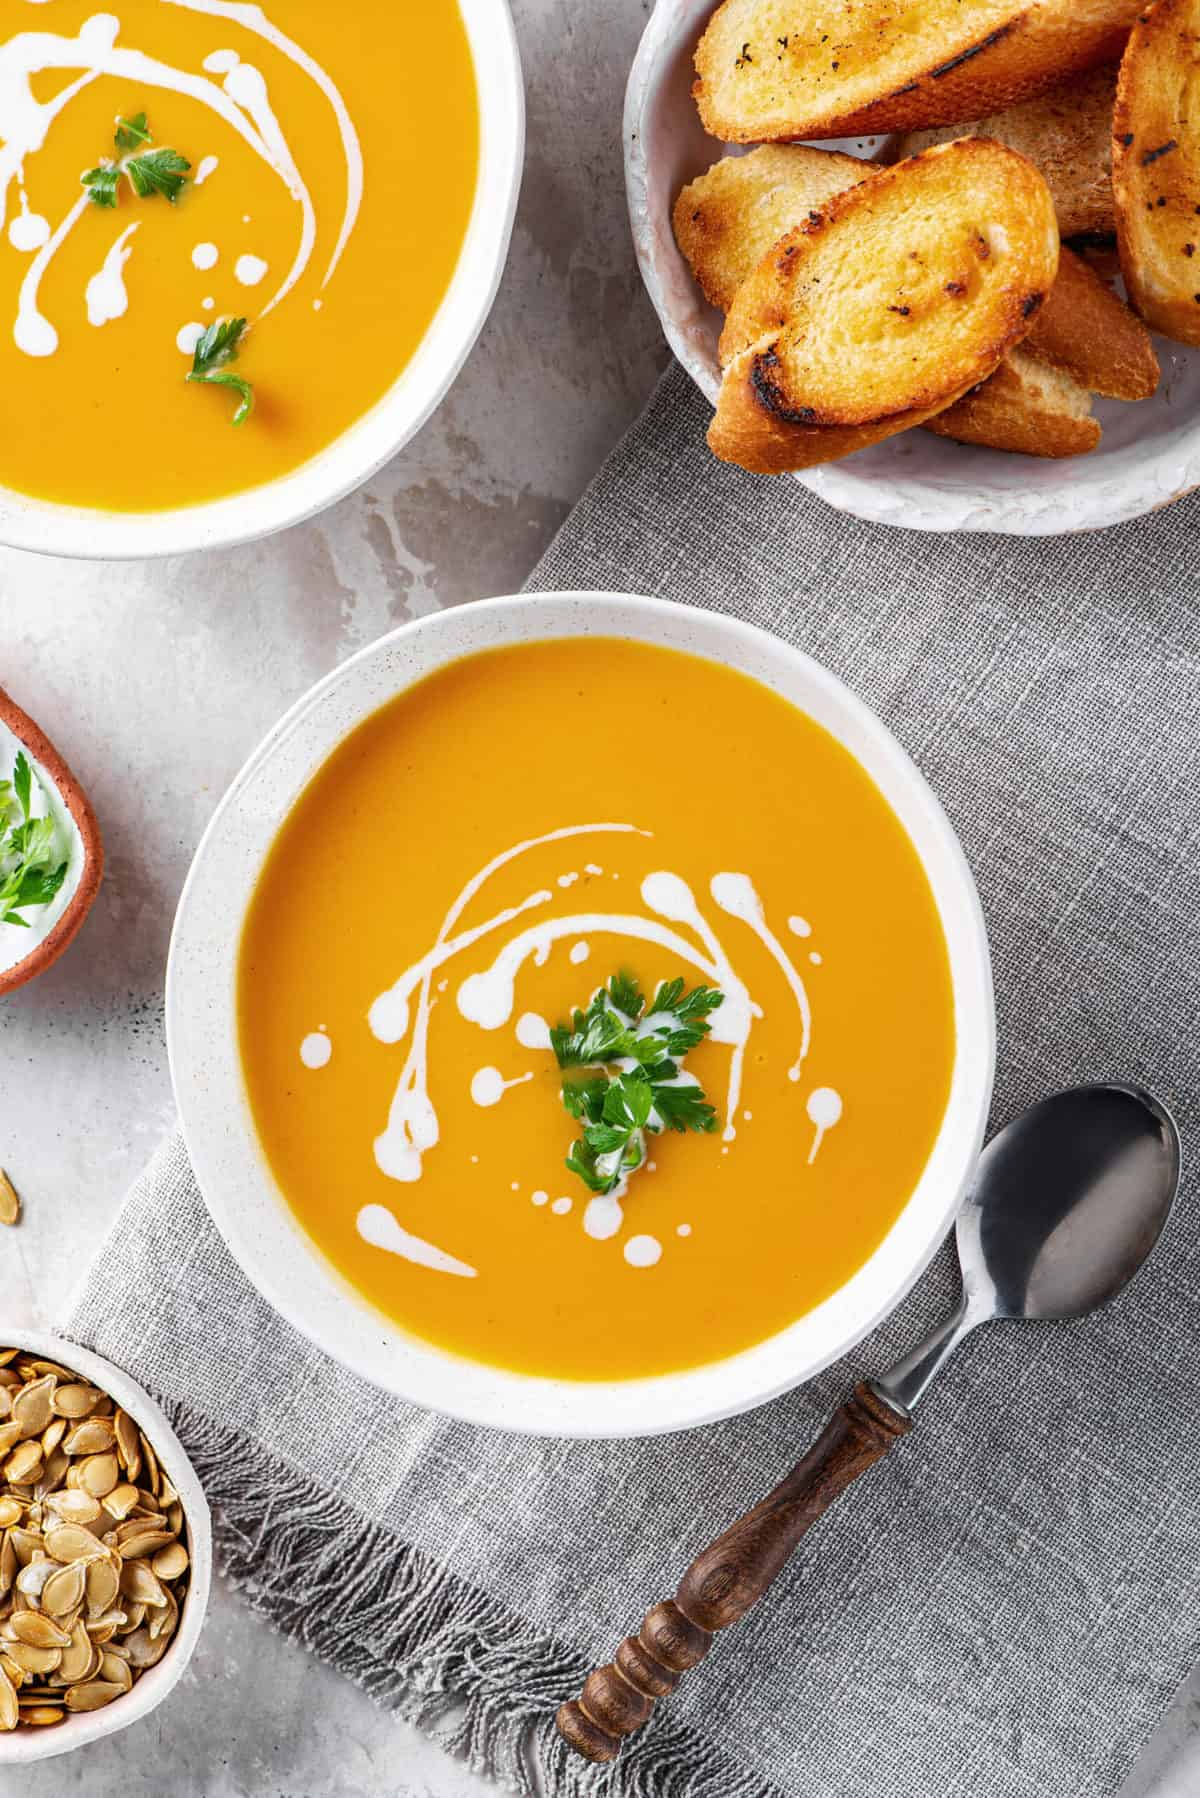 butternut squash soup with a sour cream swirl design and cilantro served in a white bowl and a silver spoon sitting next to the bowl